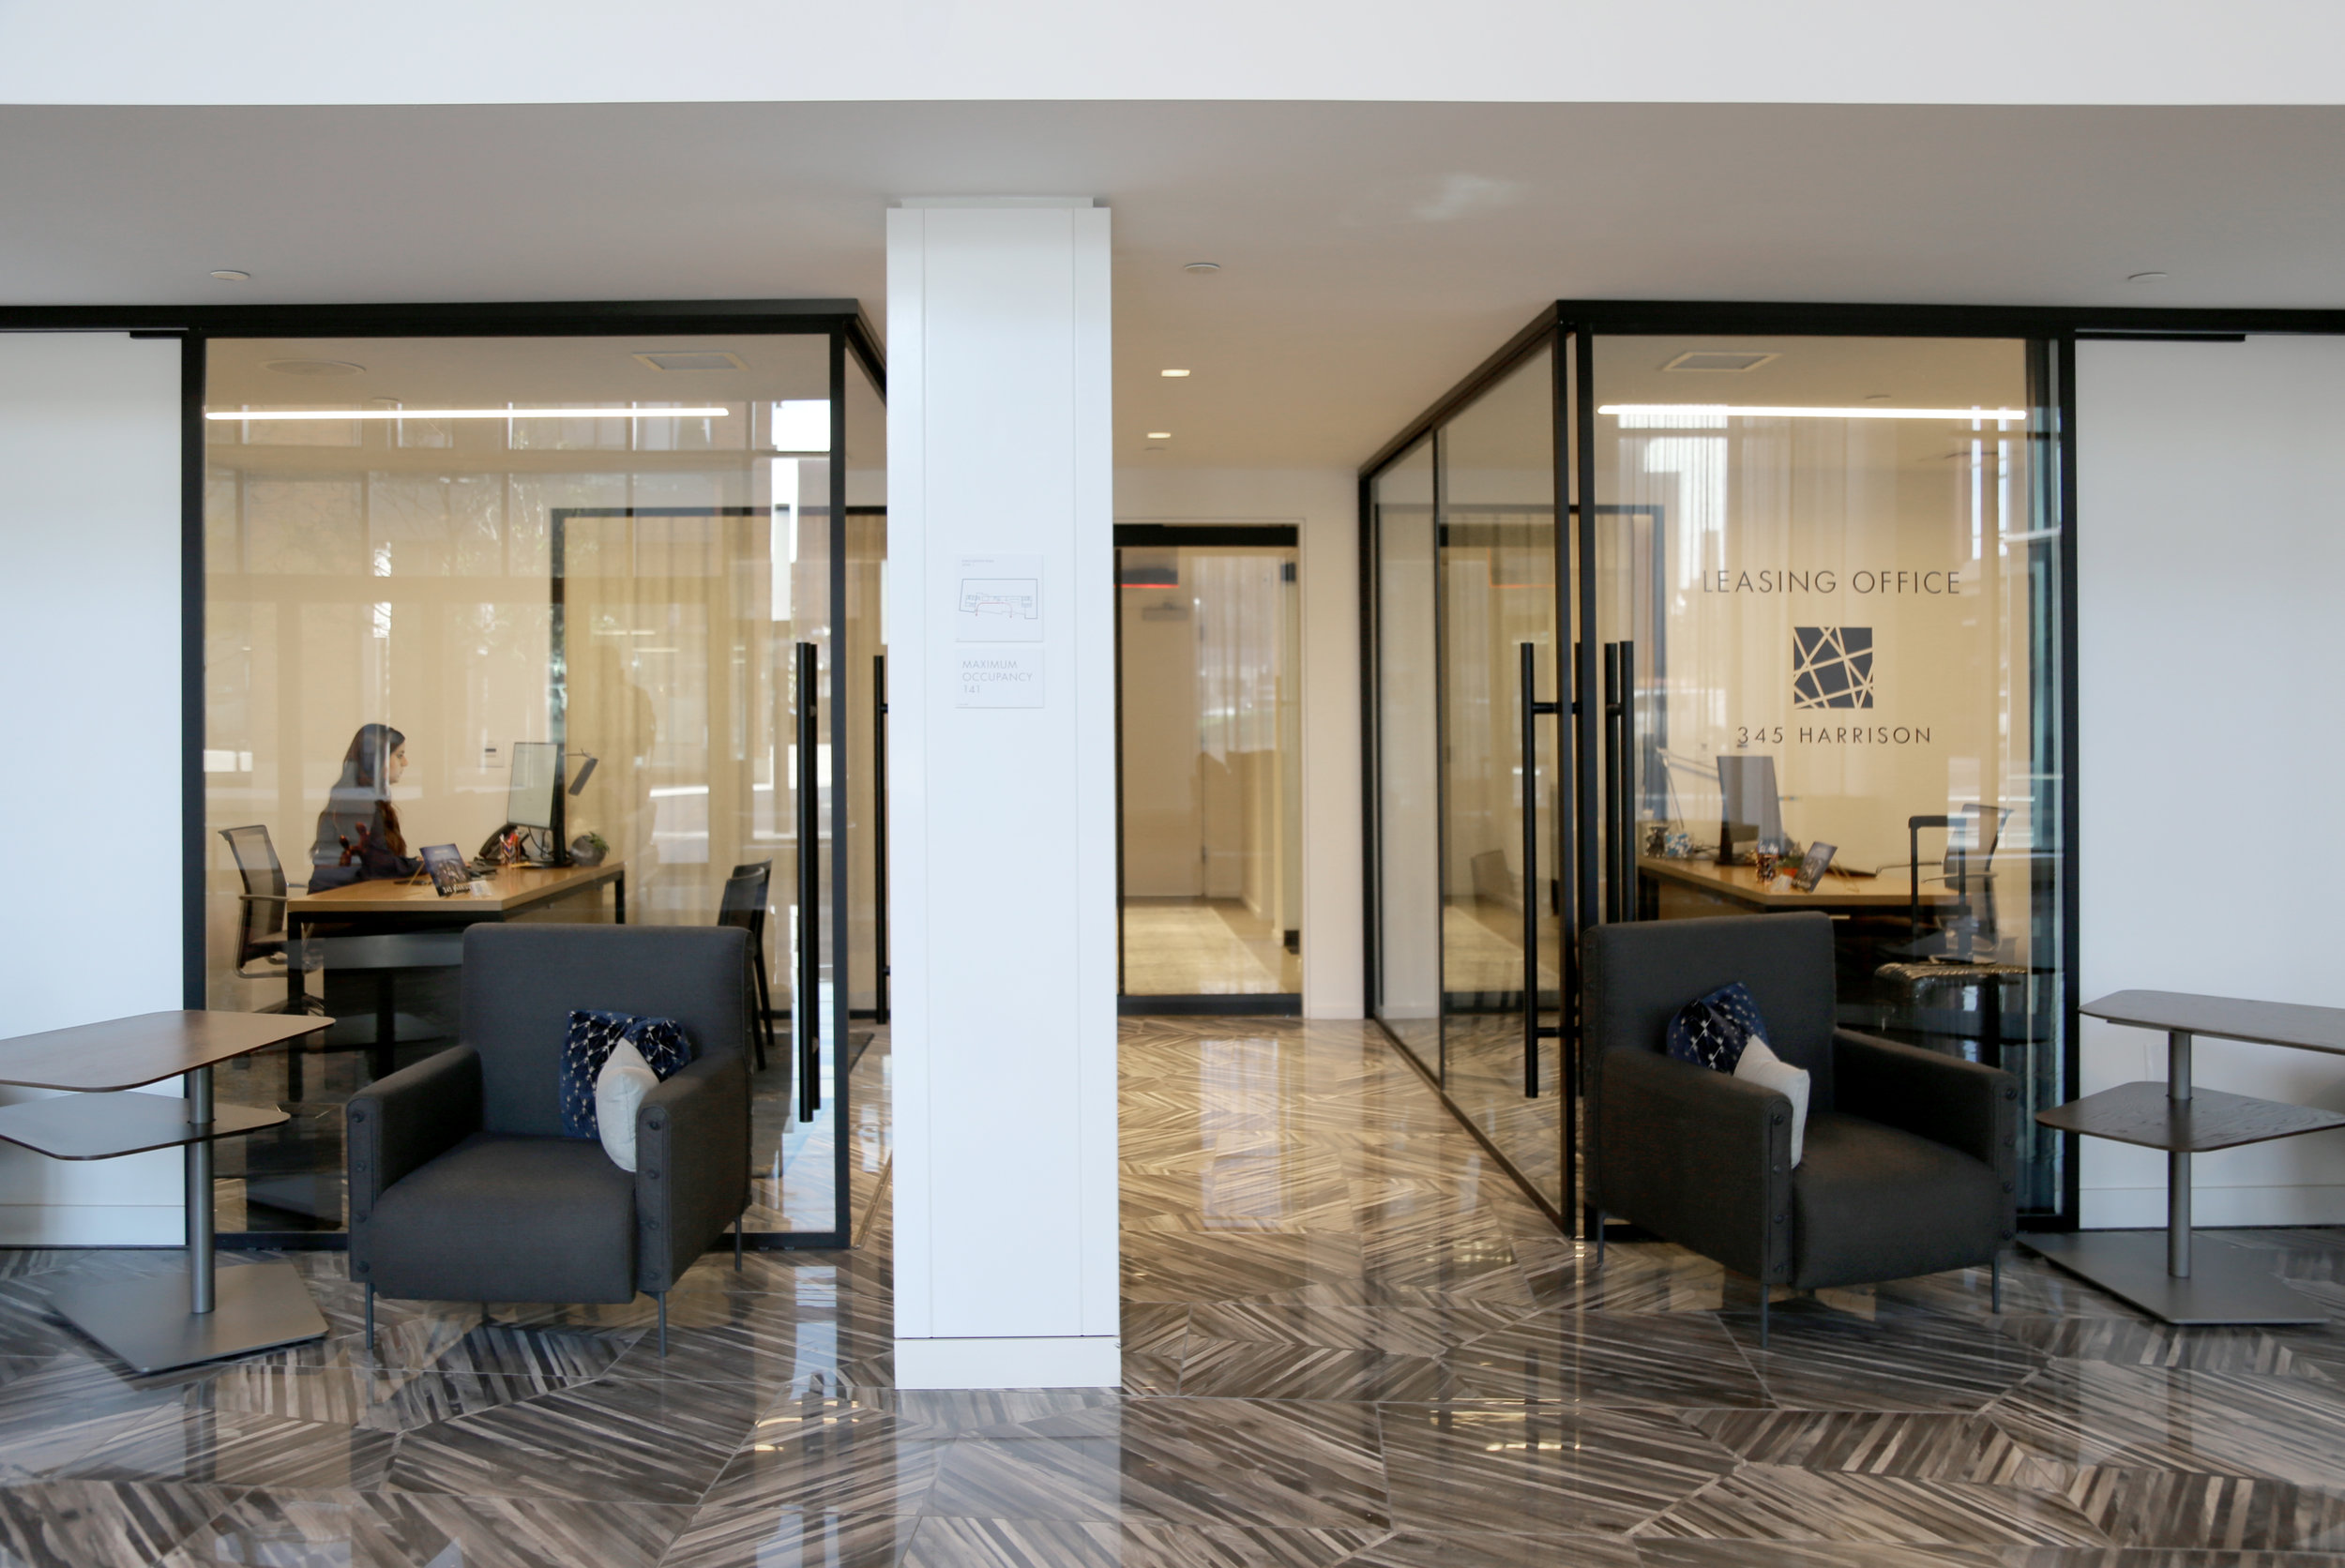 Leasing Office Glass Walls Frameless Glass Sliding Doors - Spaceworks AI.jpg